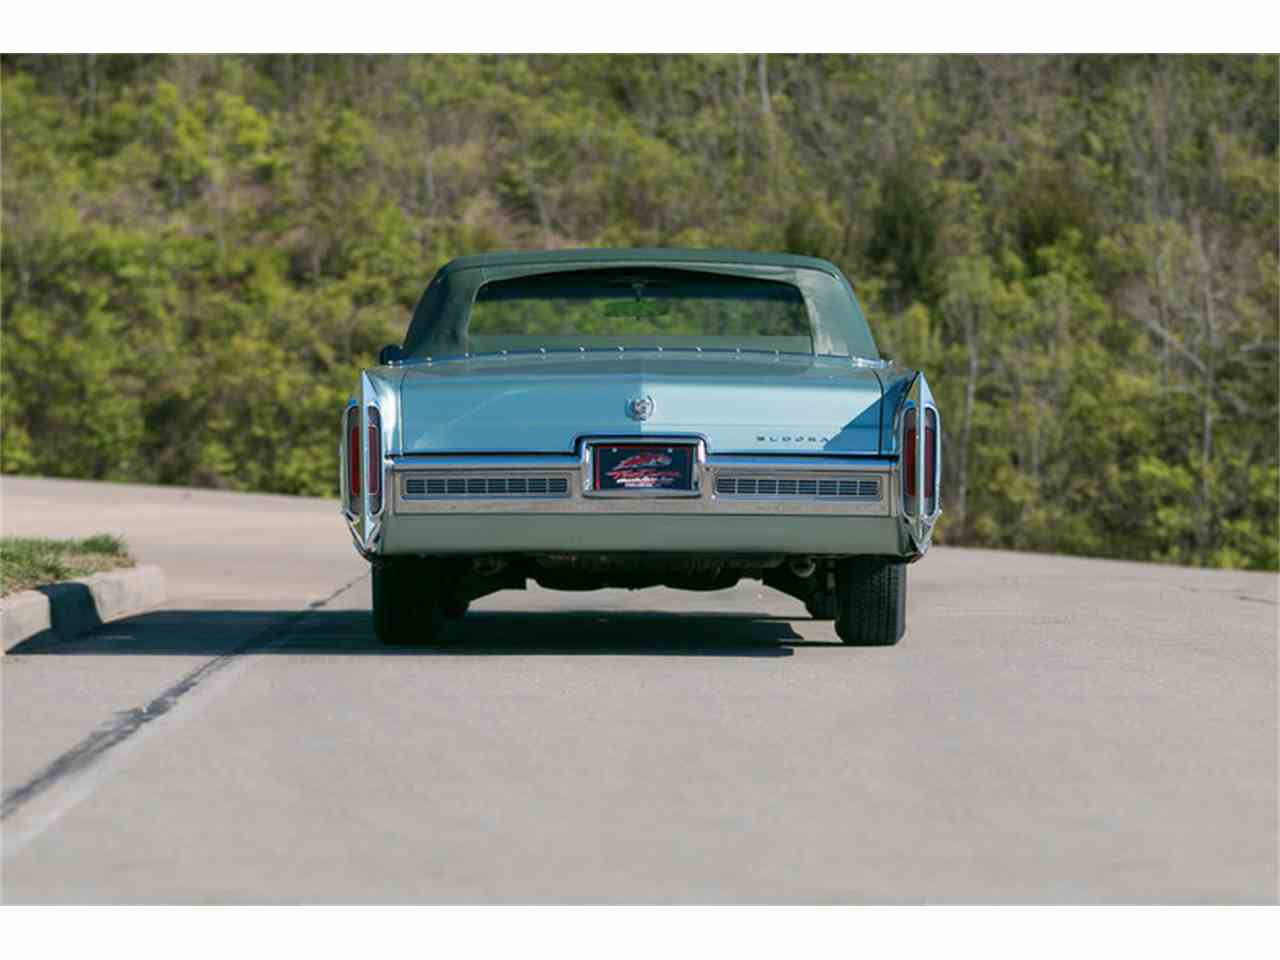 Large Picture of Classic 1966 Cadillac Eldorado located in St. Charles Missouri - LSH1